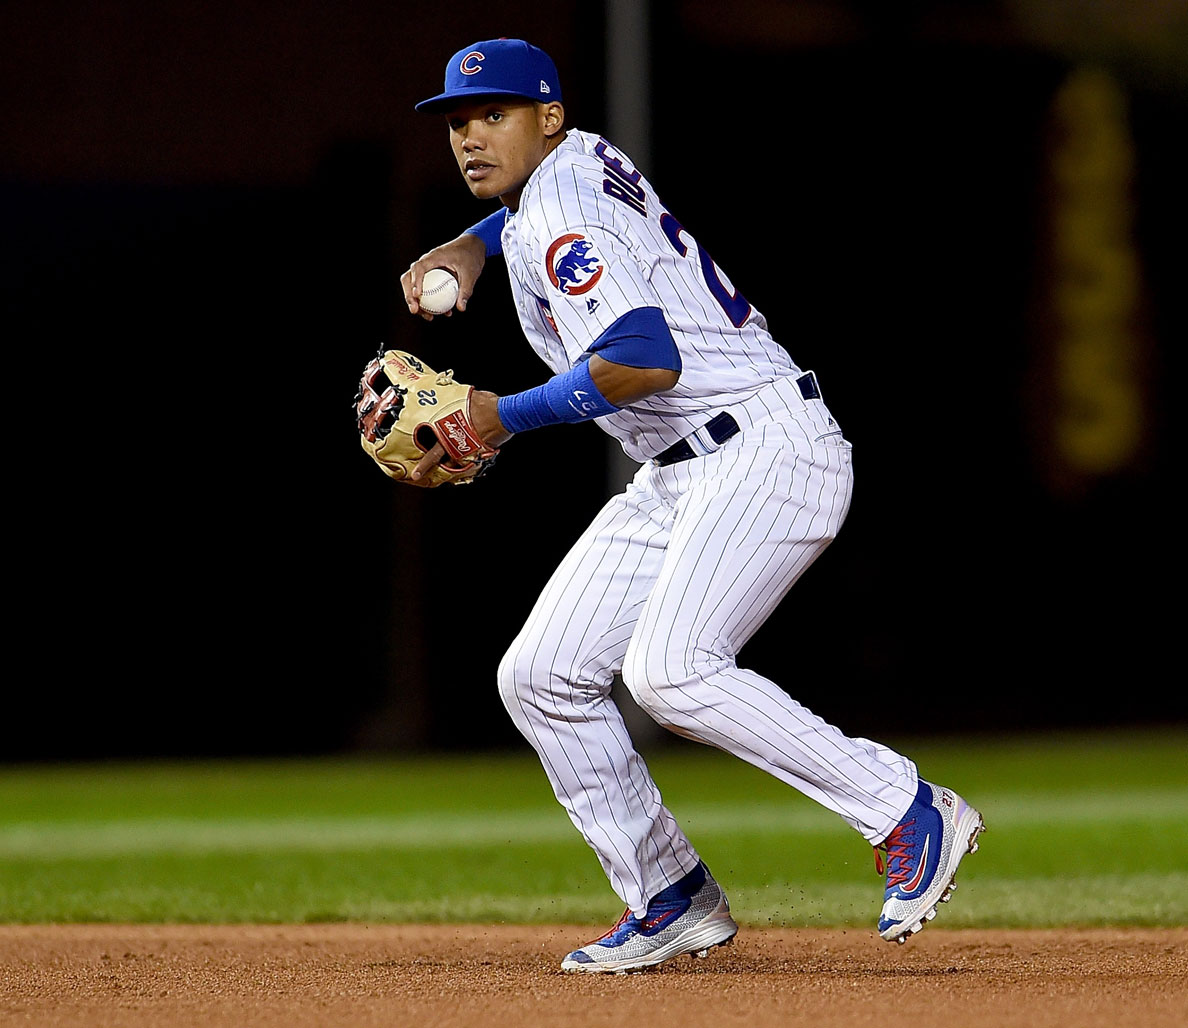 1188x1028 - Addison Russell Wallpapers 16